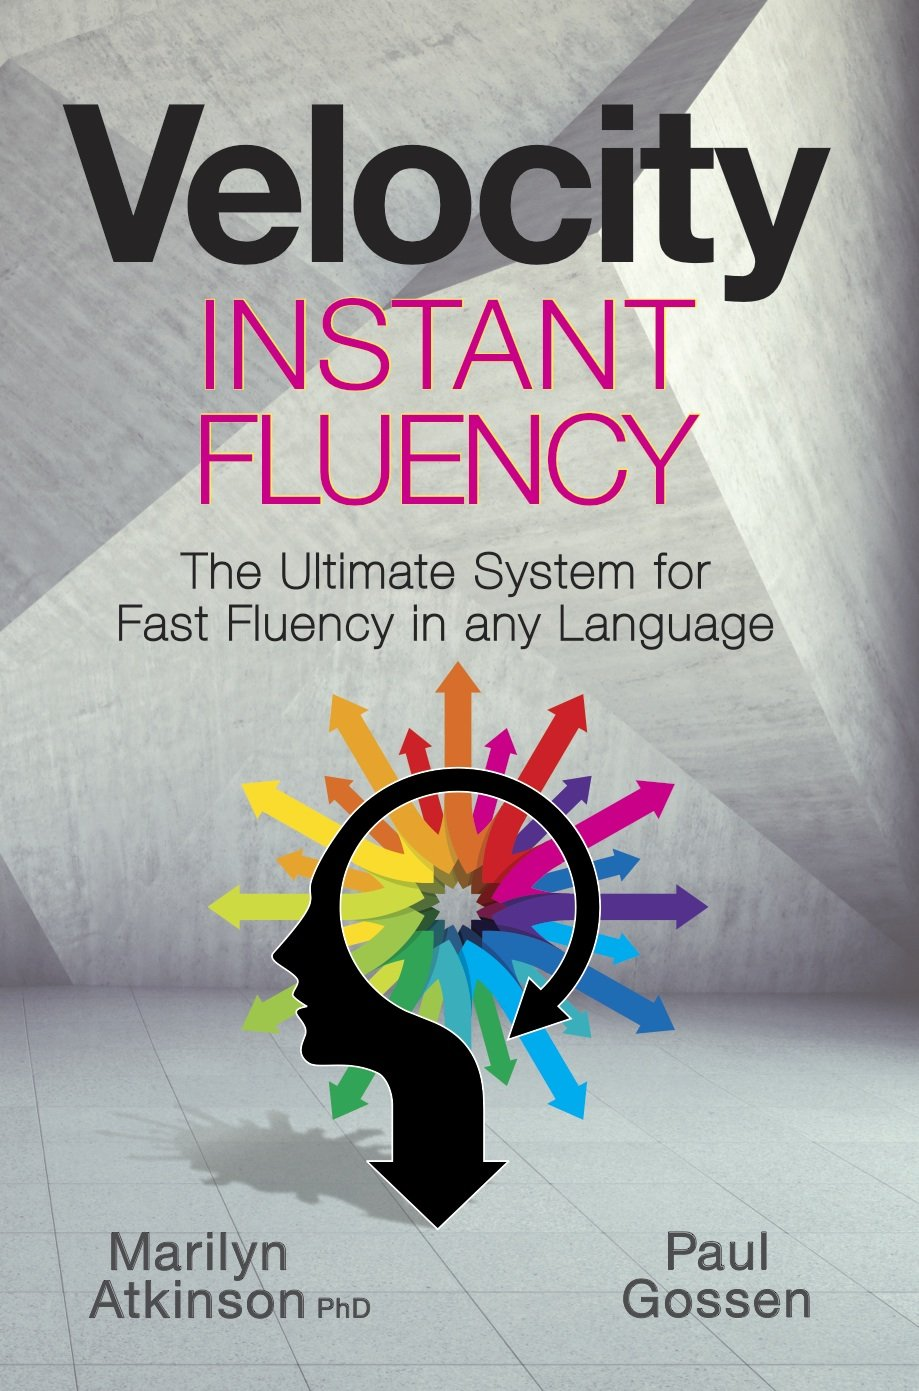 Velocity Instant Fluency - The Ultimate System for Fast Fluency in any Language by Velocity Learning